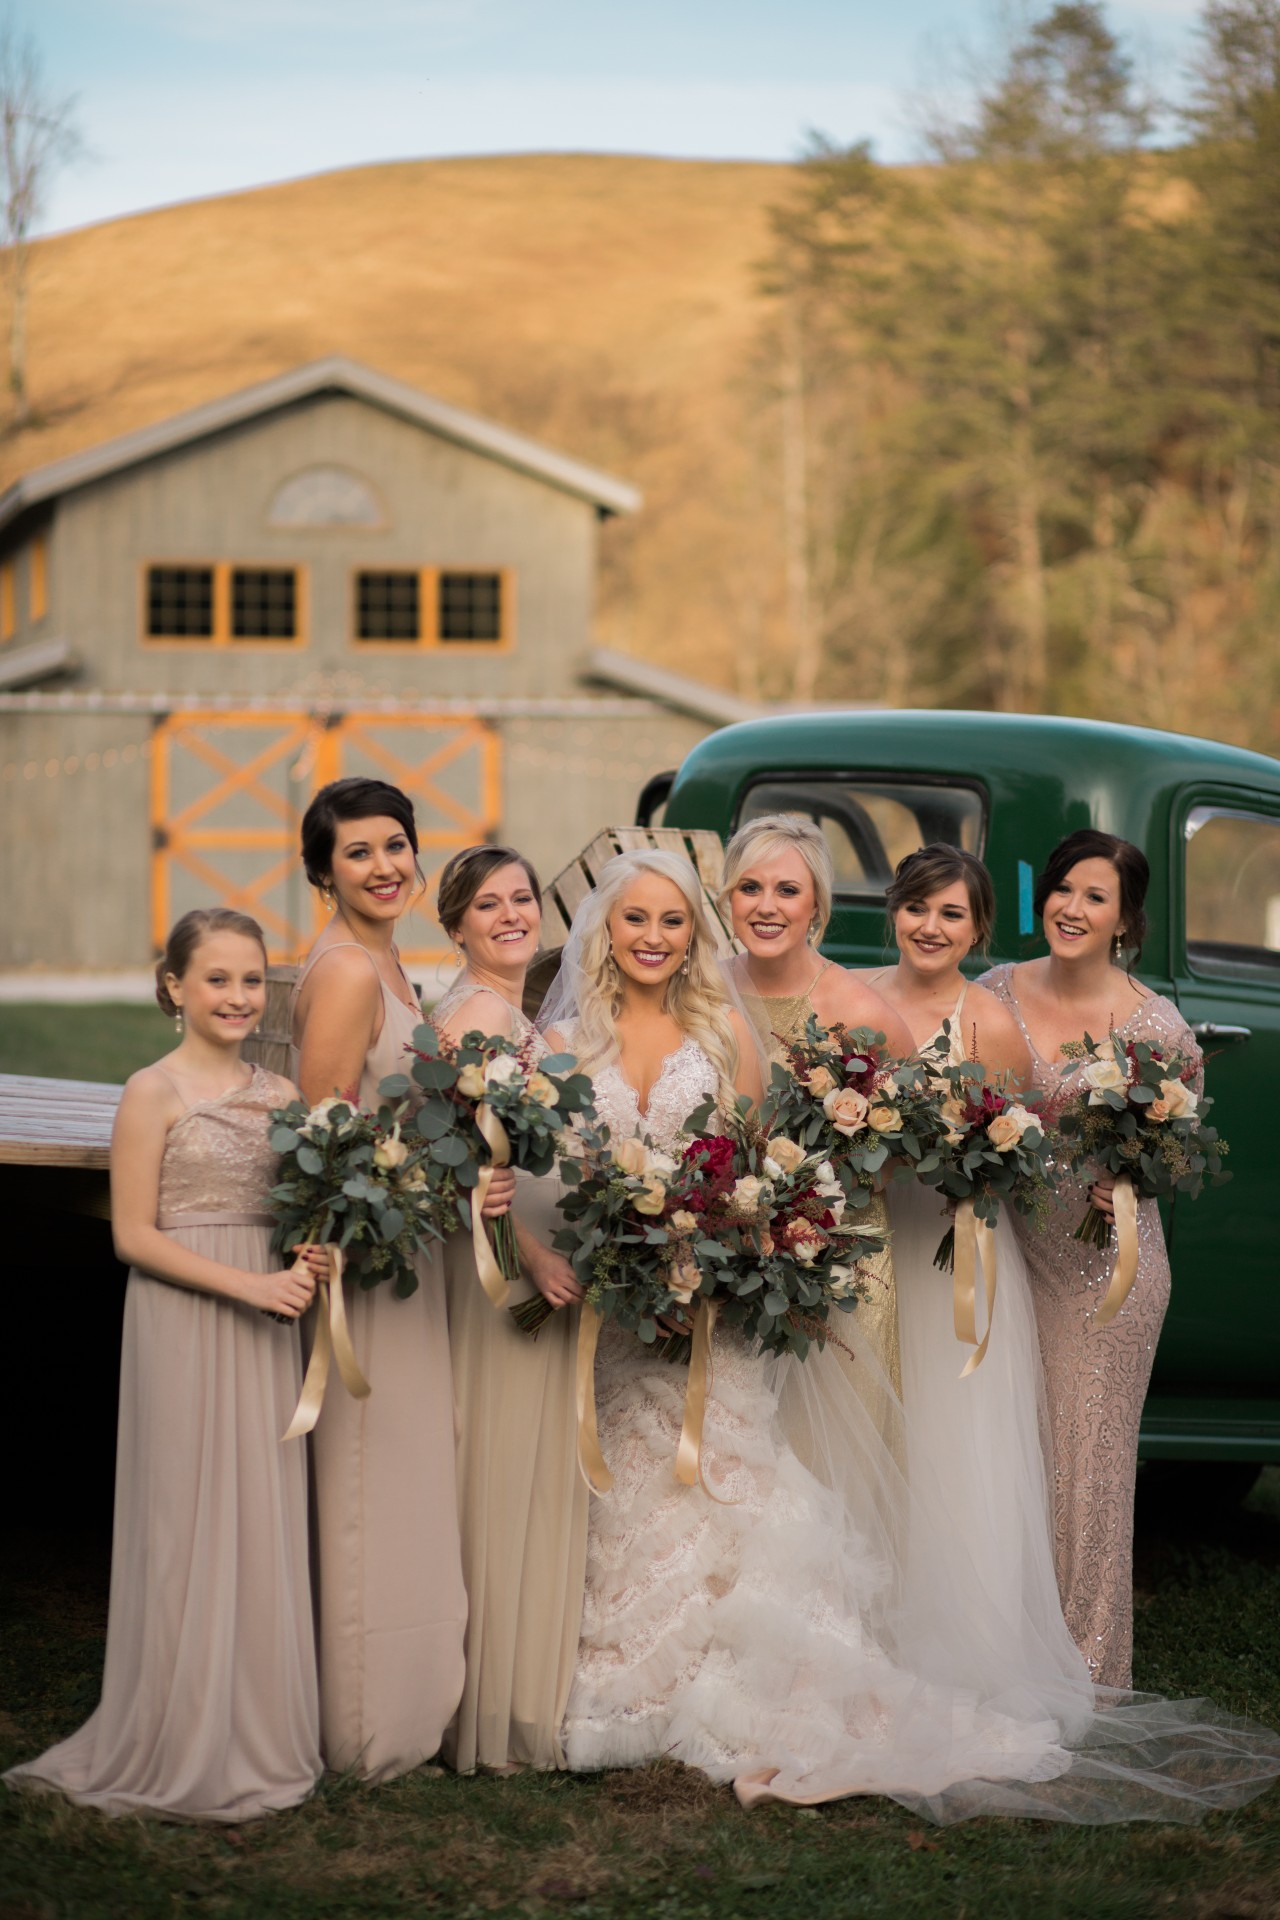 Bridal Party with Vintage Truck 4 Points Farm